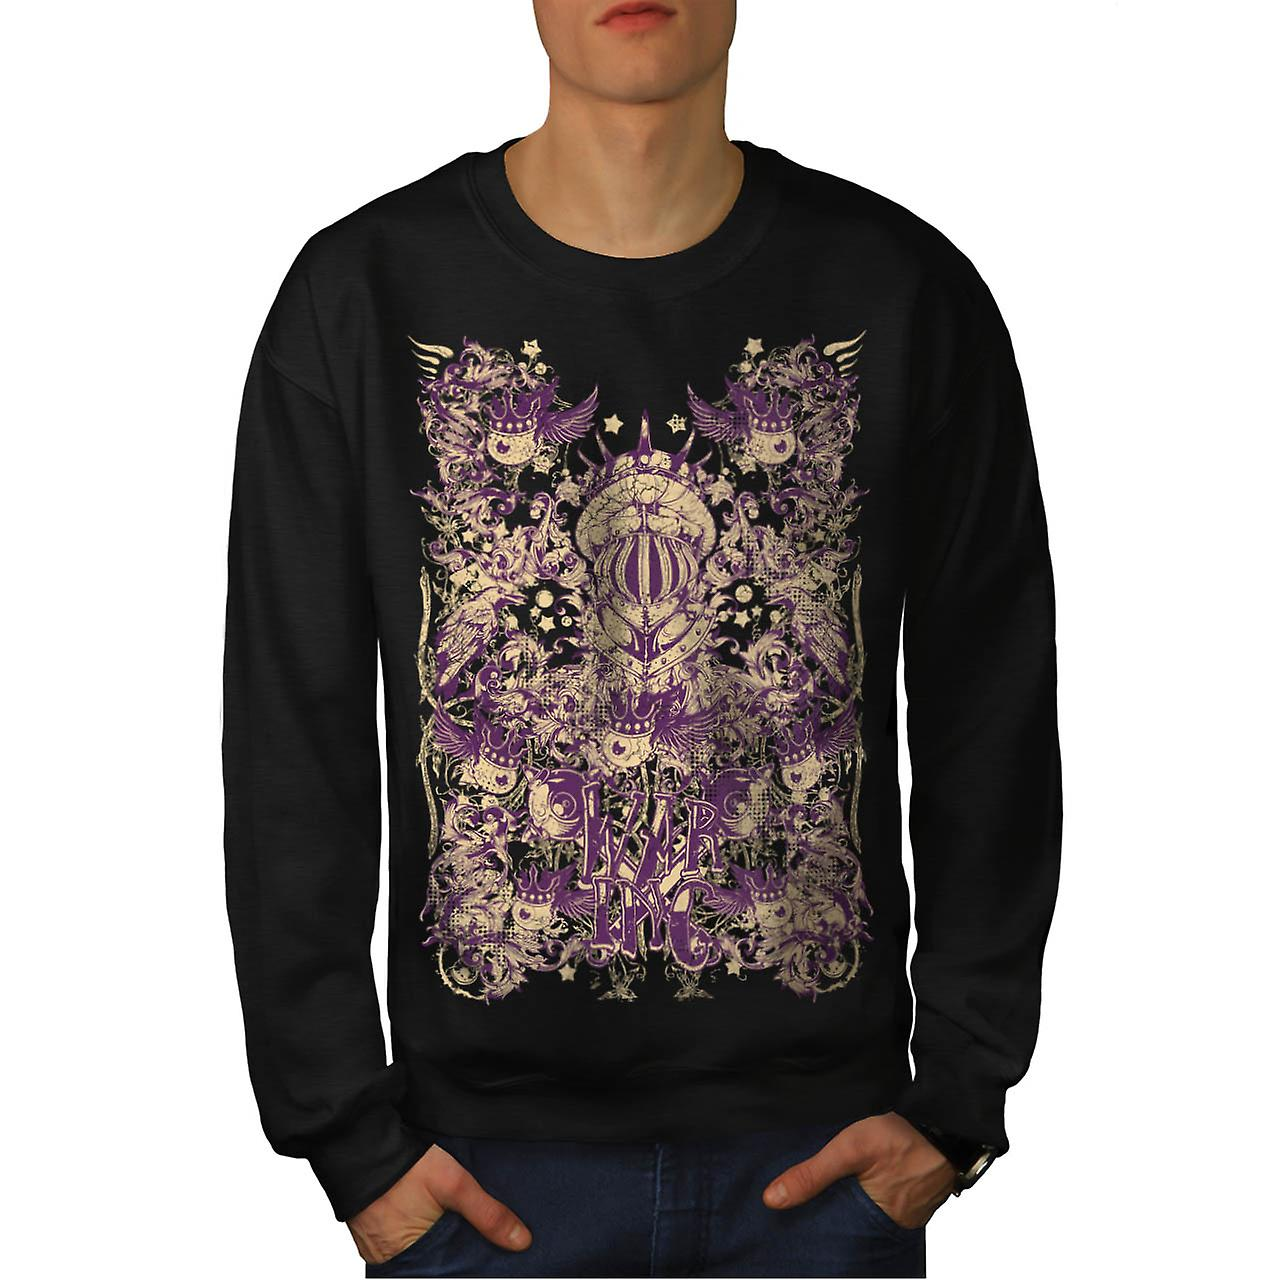 War Inc Devil King Monster Fight Men Black Sweatshirt | Wellcoda